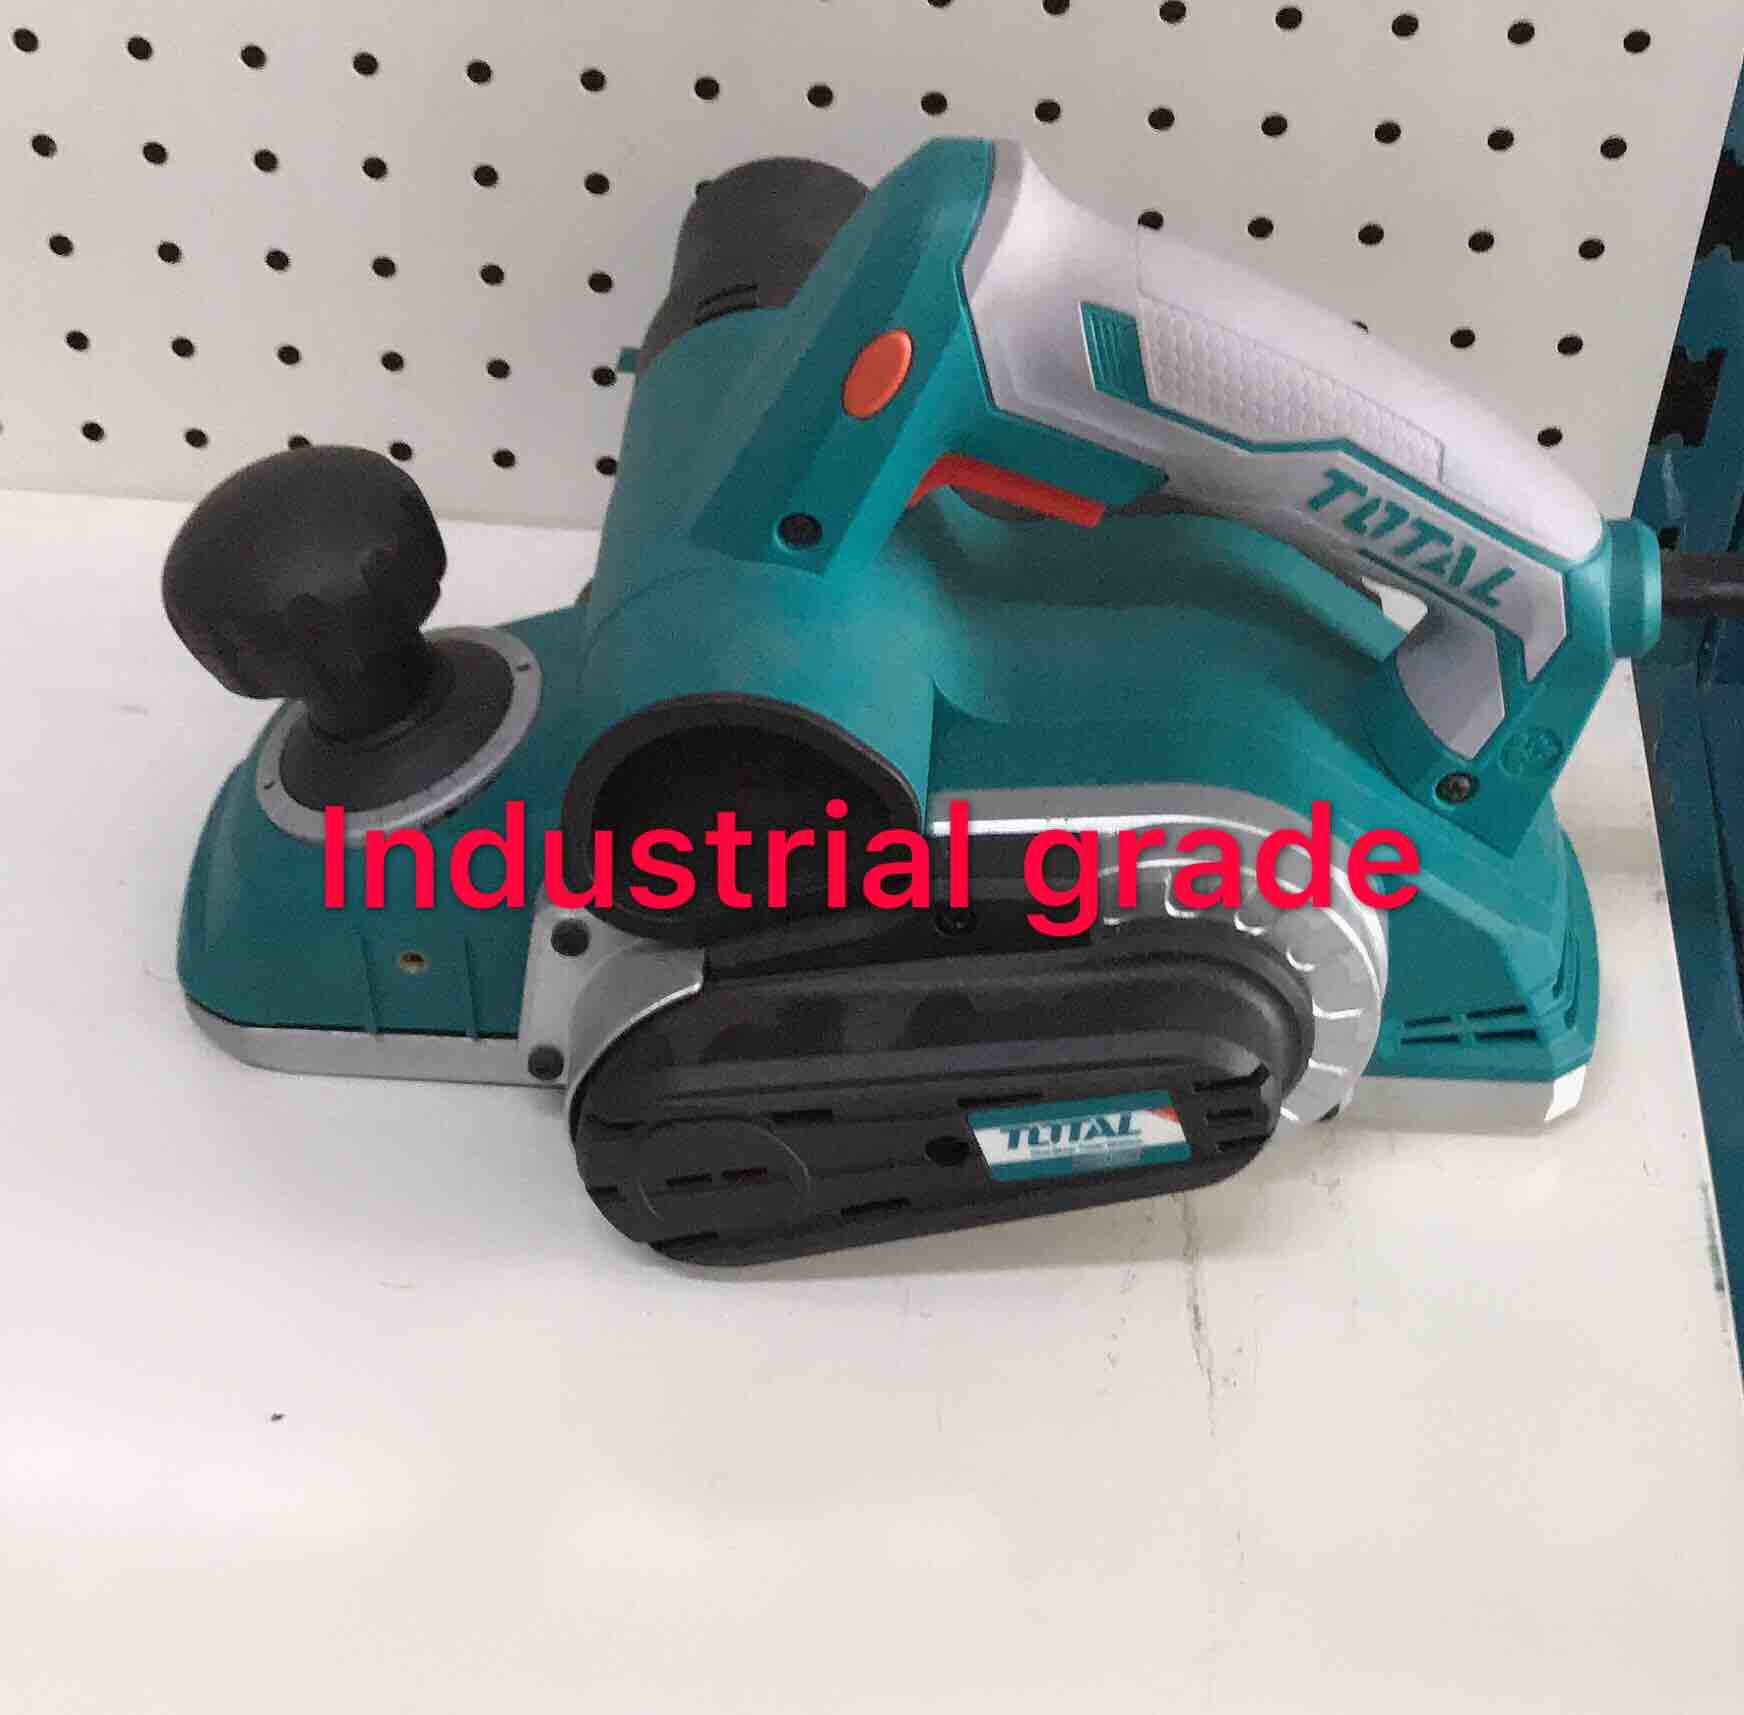 Planers For Sale Jointer Prices Brands Review In Philippines What Does An Electric Planer Do 1050windustrial